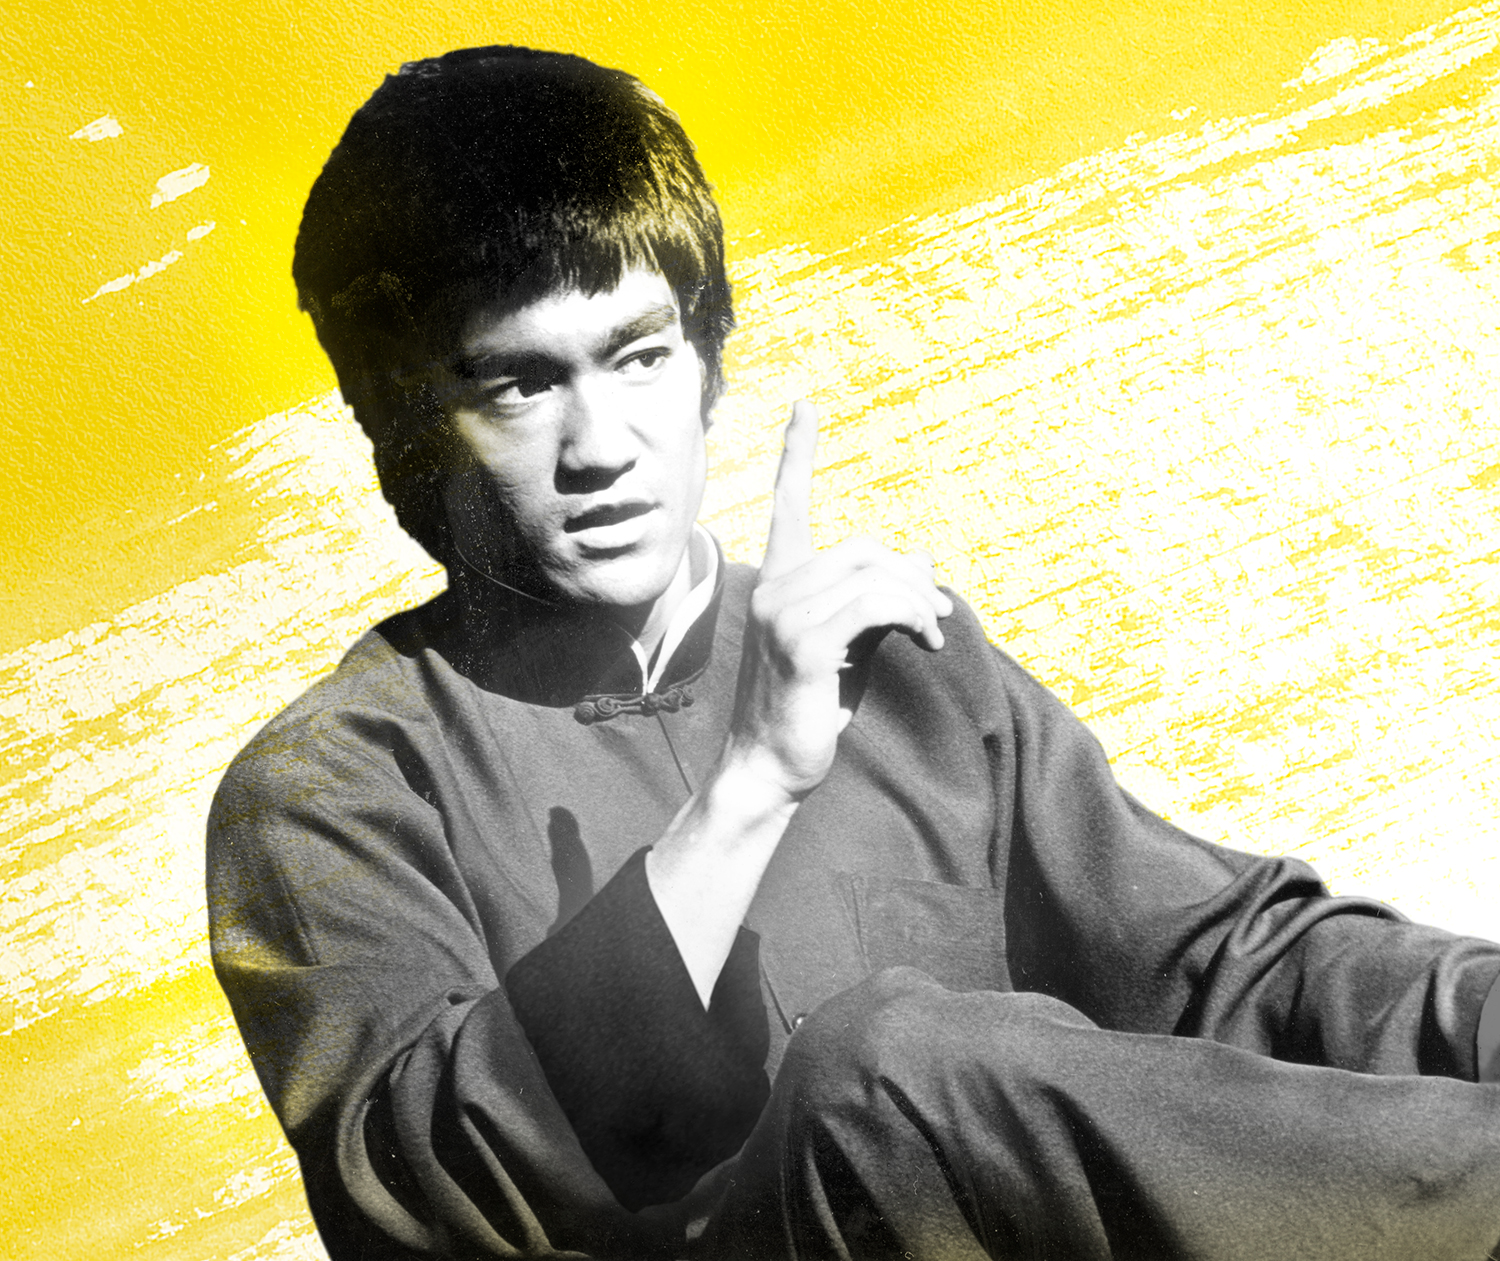 BruceLee_r03_Treatment_10.jpg